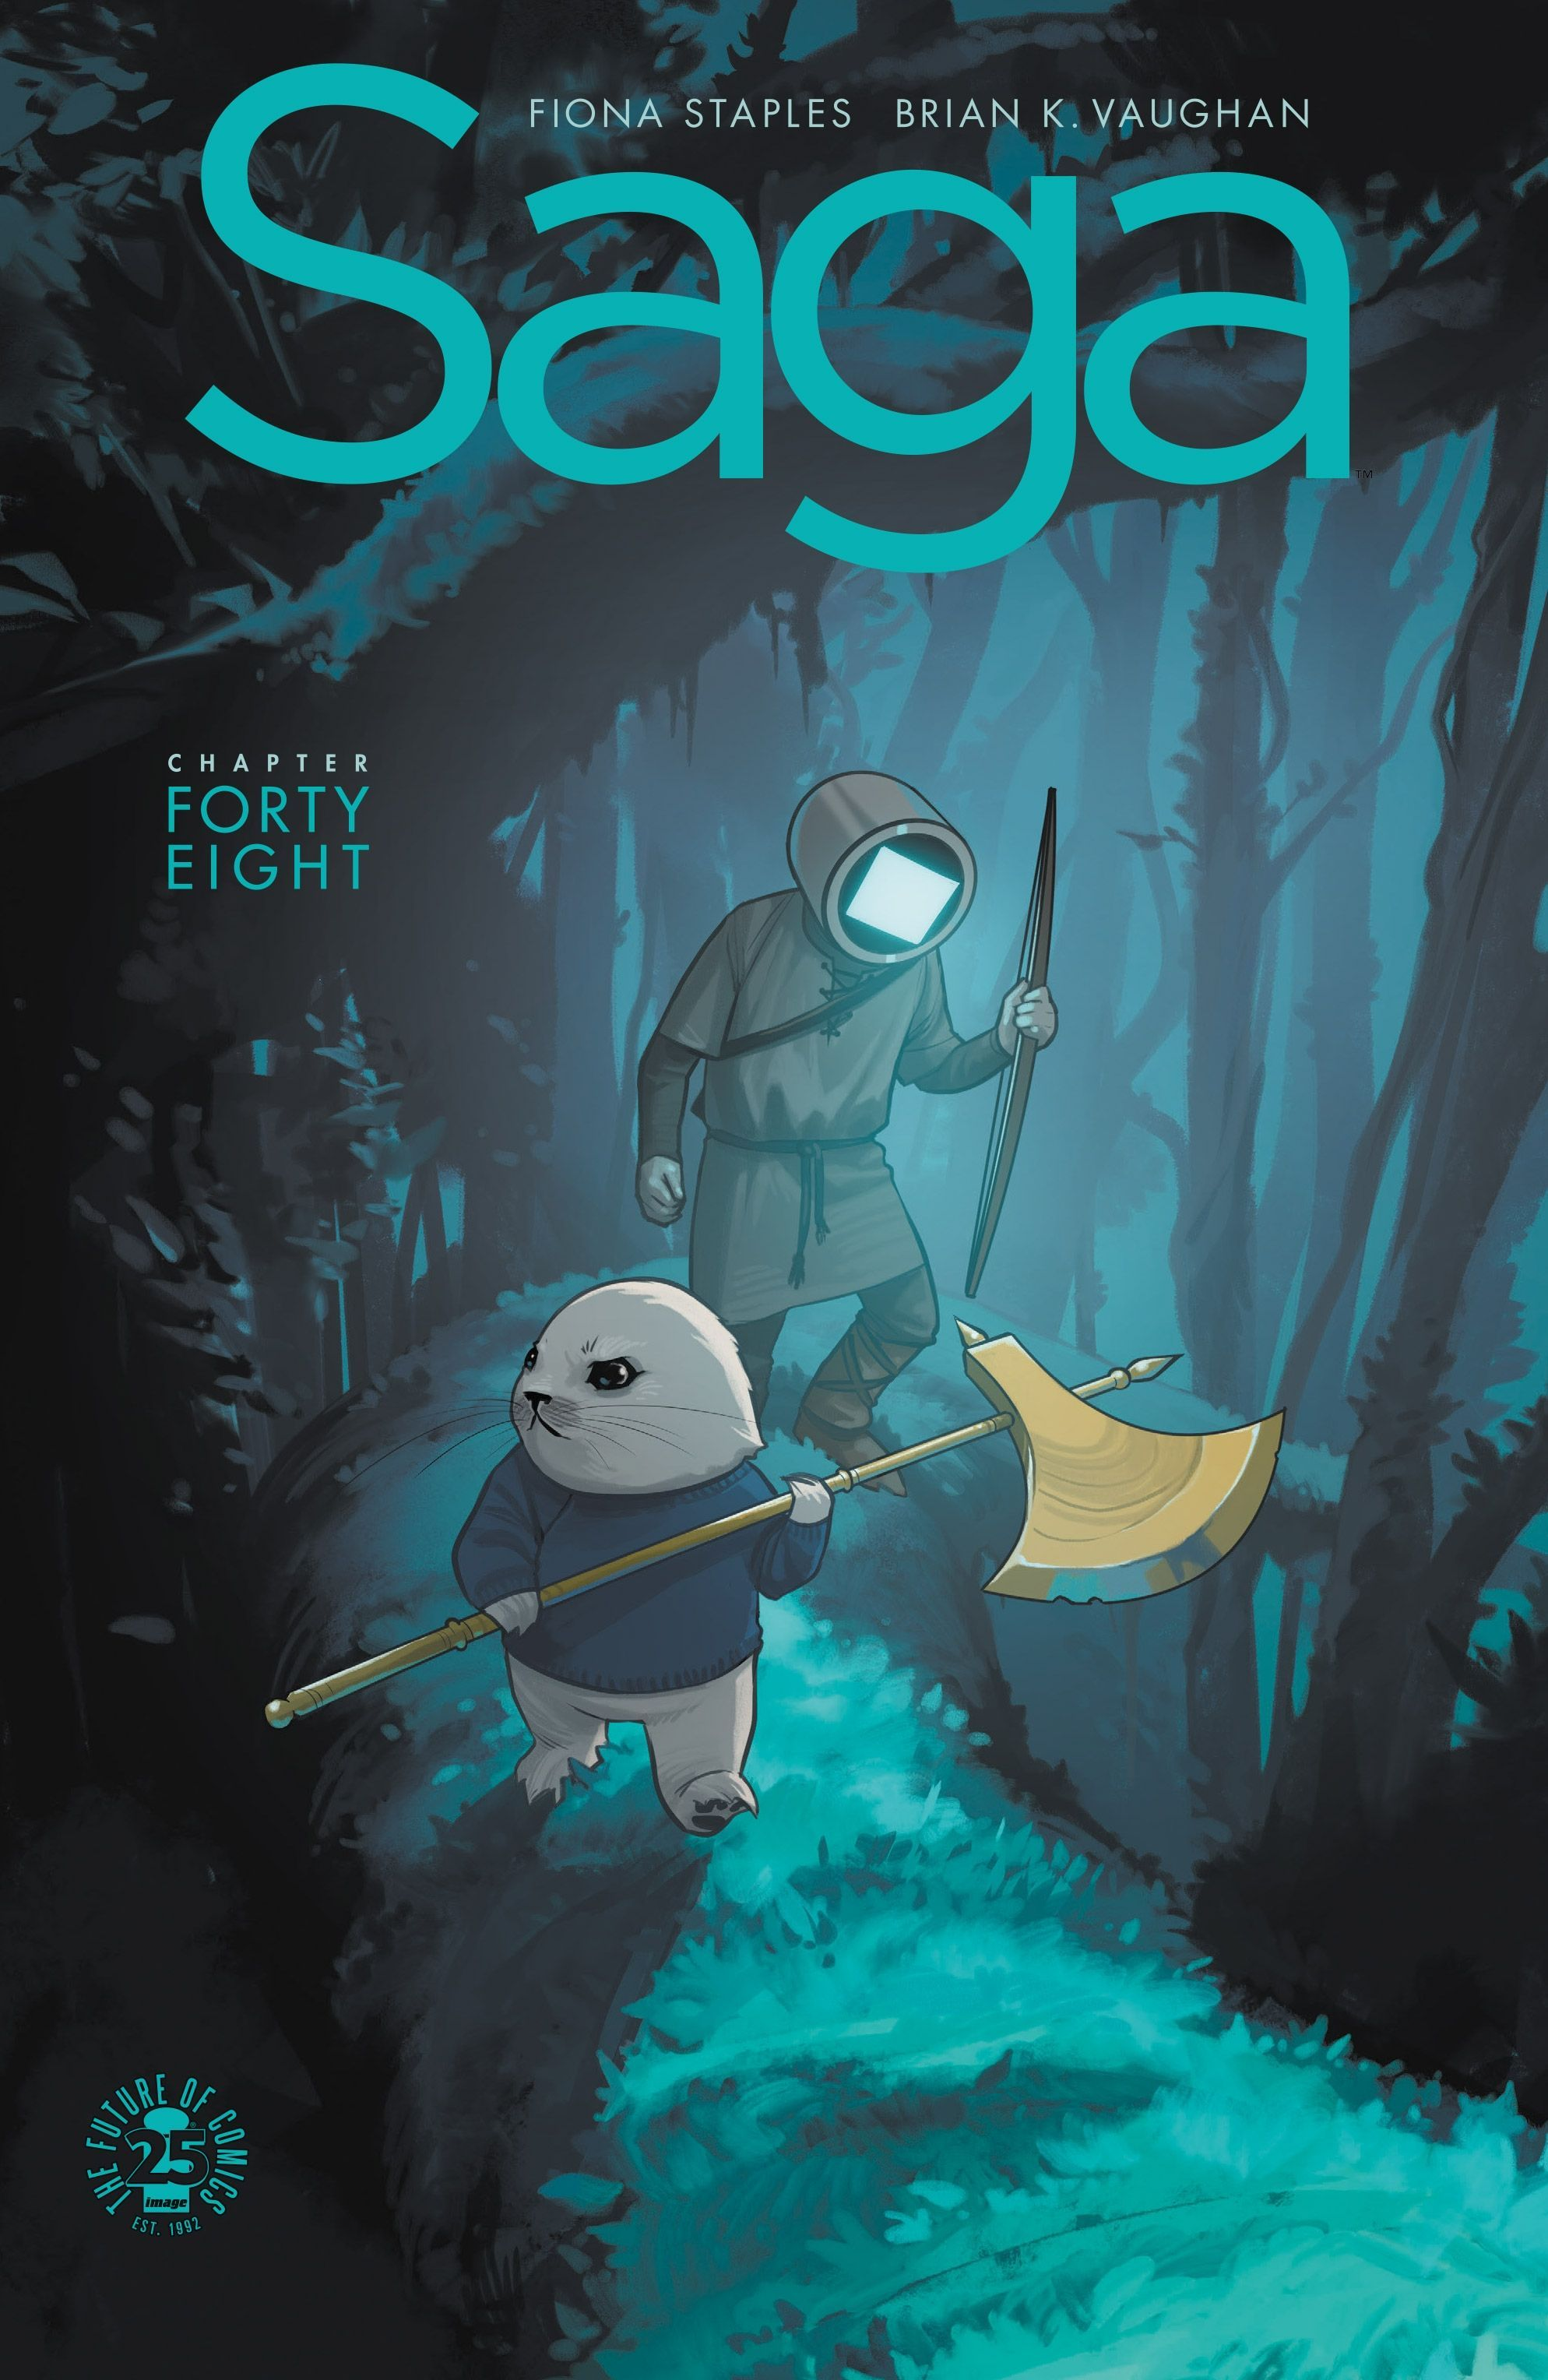 END OF STORY ARC Ghüs and Squire have an adventure. Saga